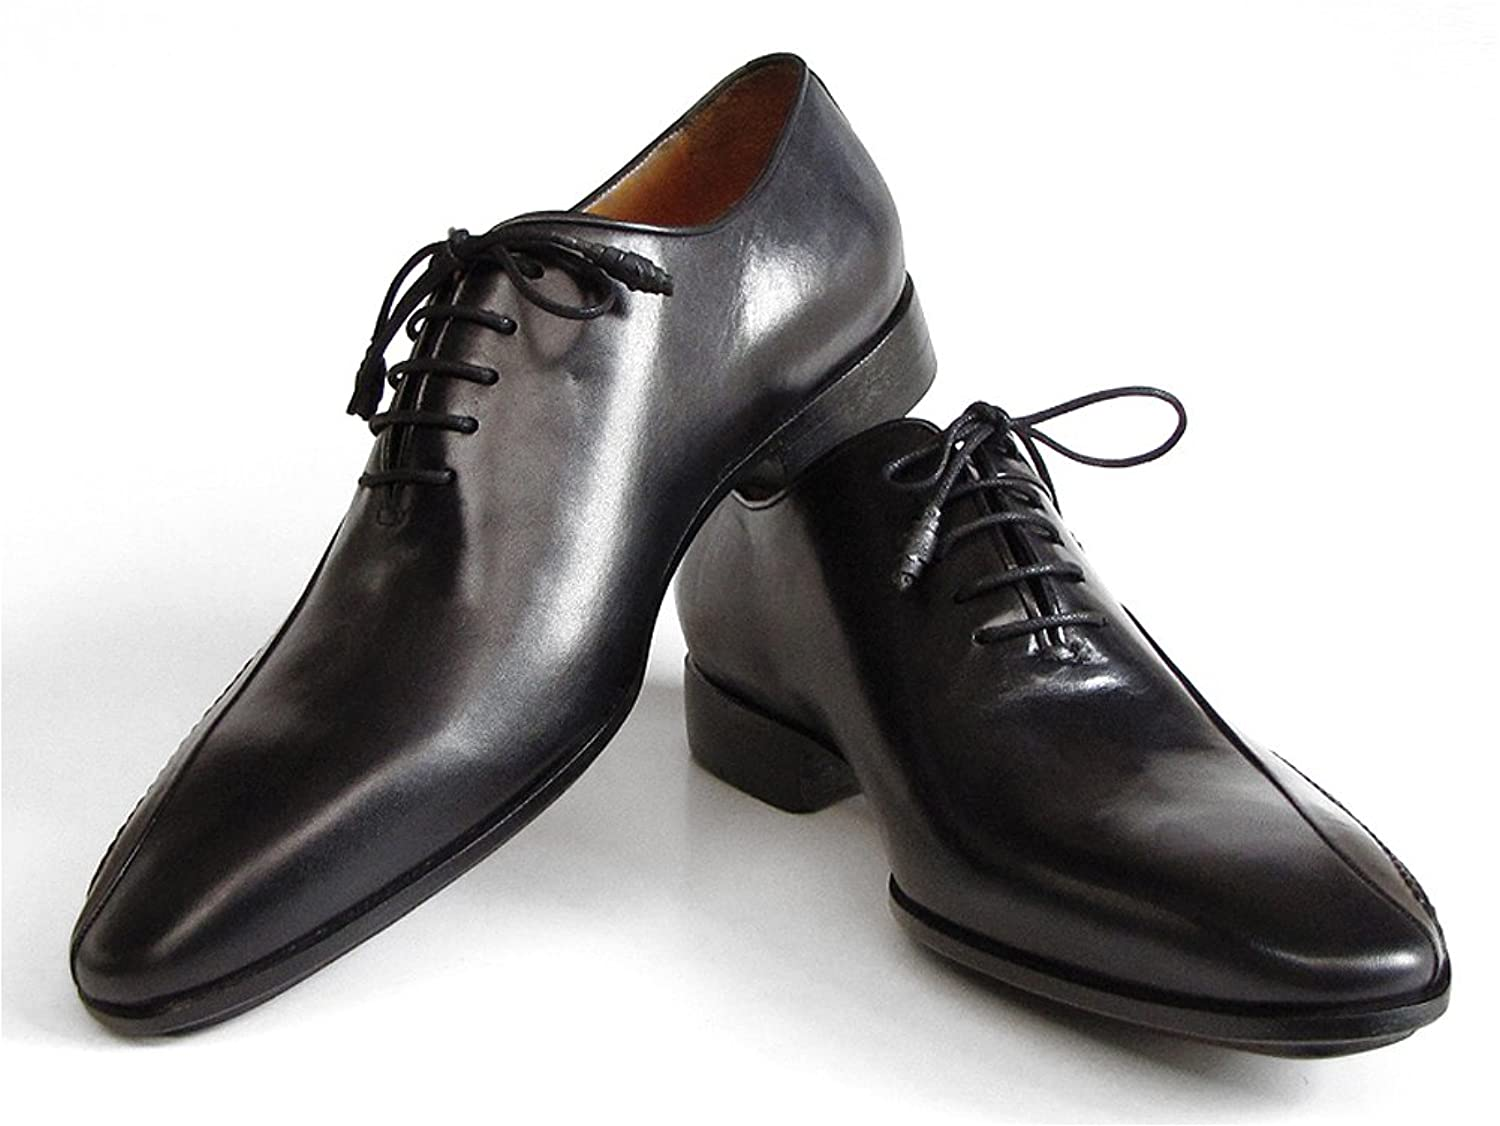 Paul Parkman Men's Black Leather Oxfords - Finest Italian calfskin - Side  Handsewn Leather Upper and Leather Sole: Amazon.co.uk: Shoes & Bags